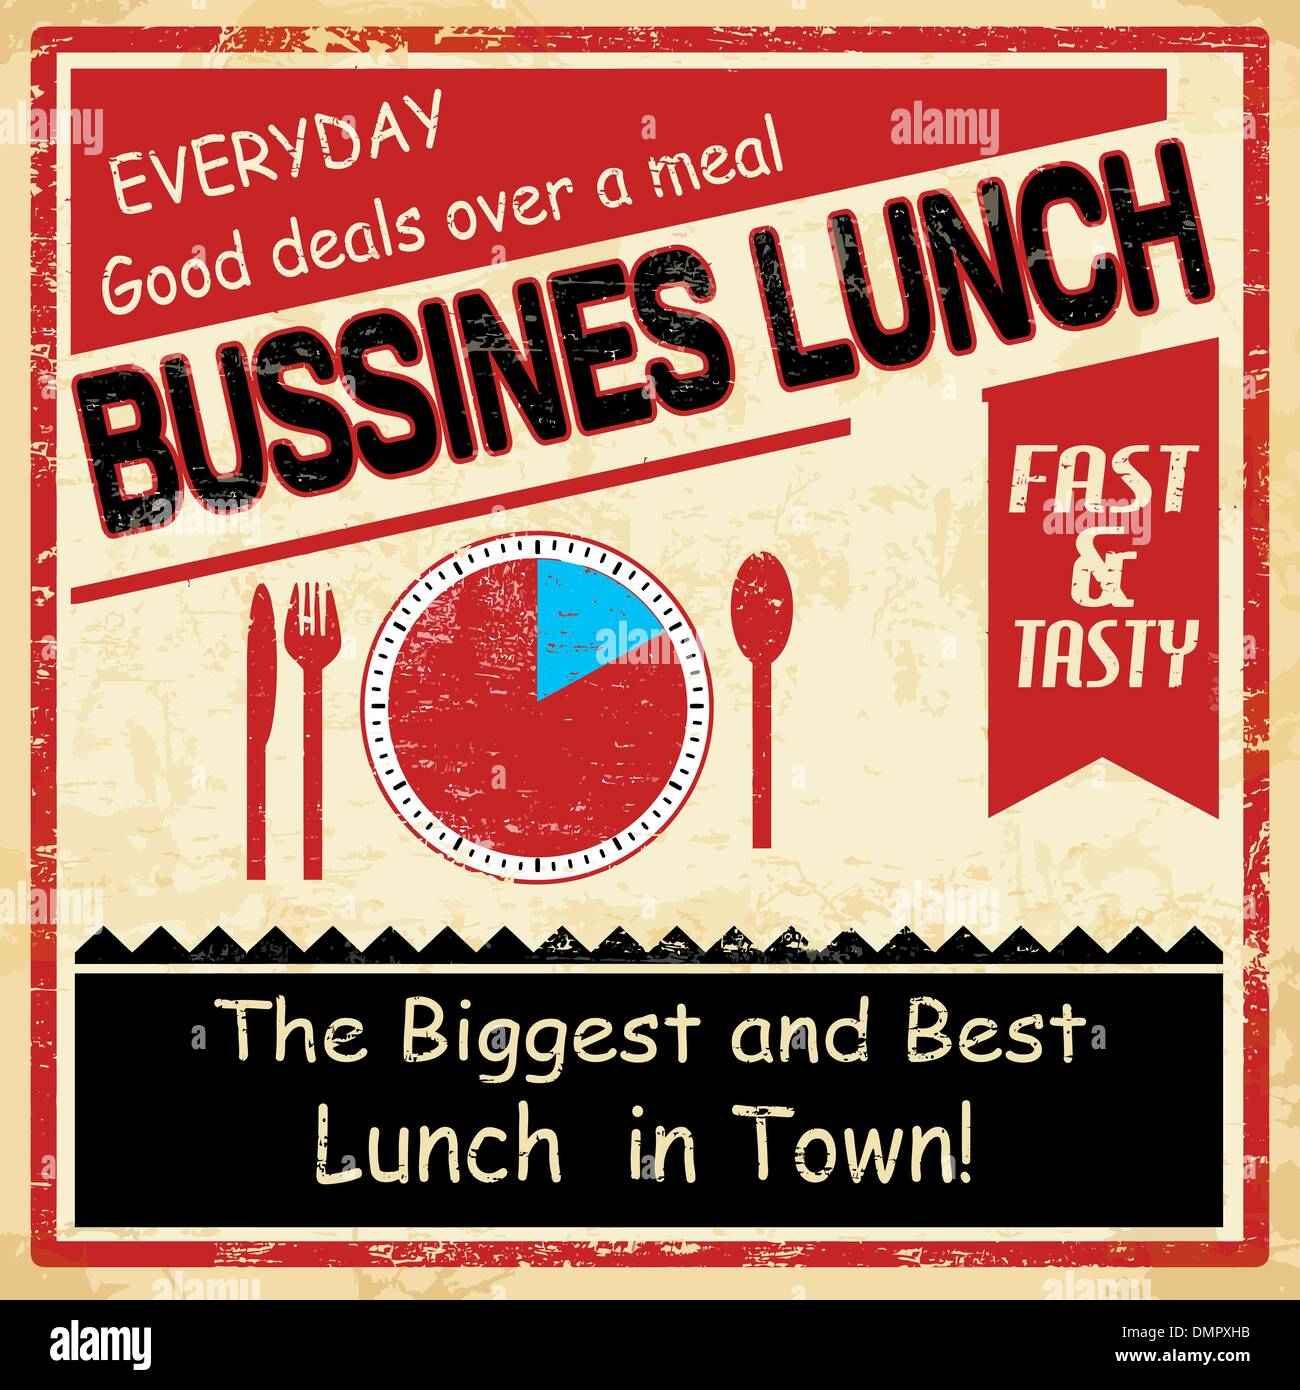 Vintage bussiness lunch grunge poster - Stock Vector